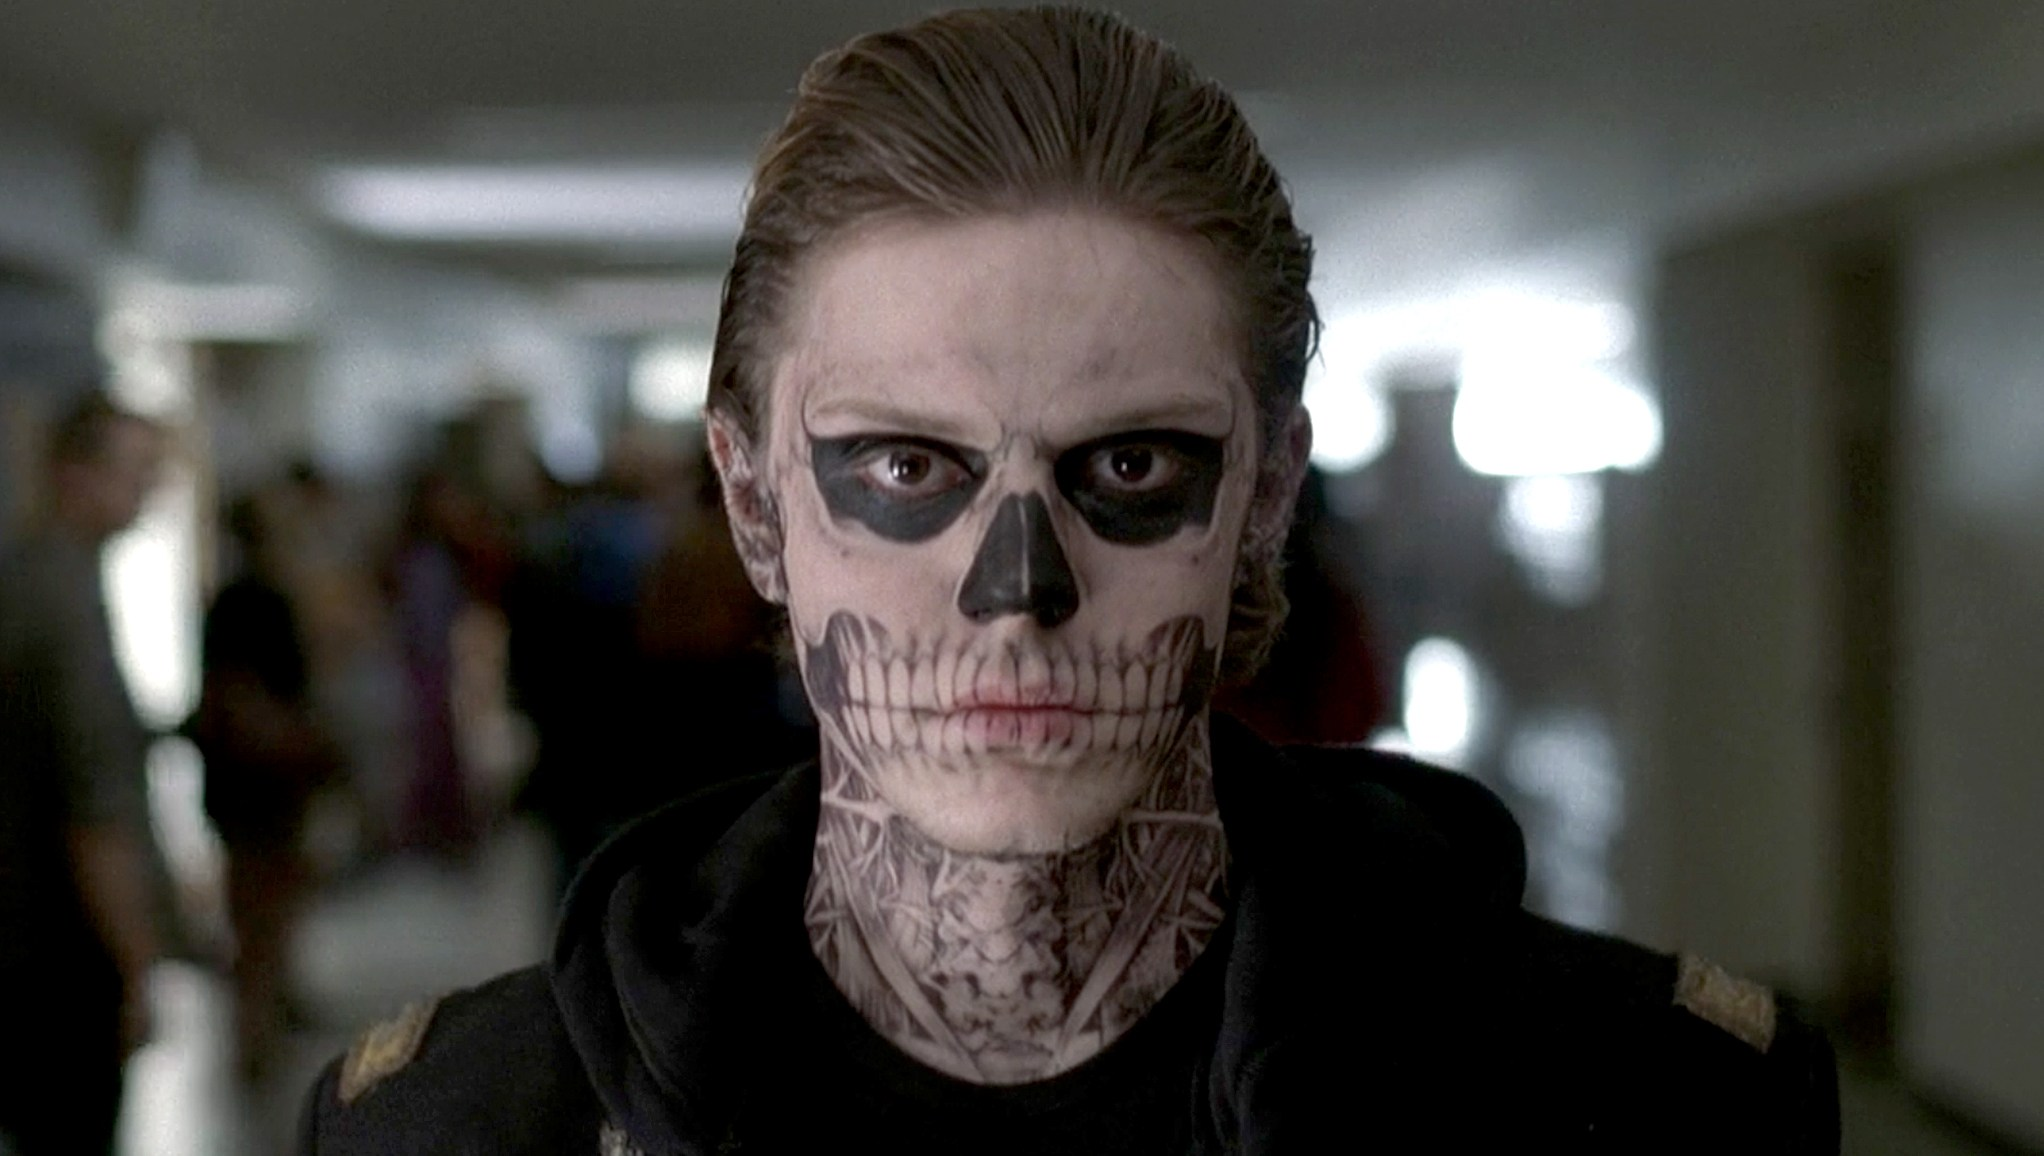 Evan Peters in American Horror Story: Murder House